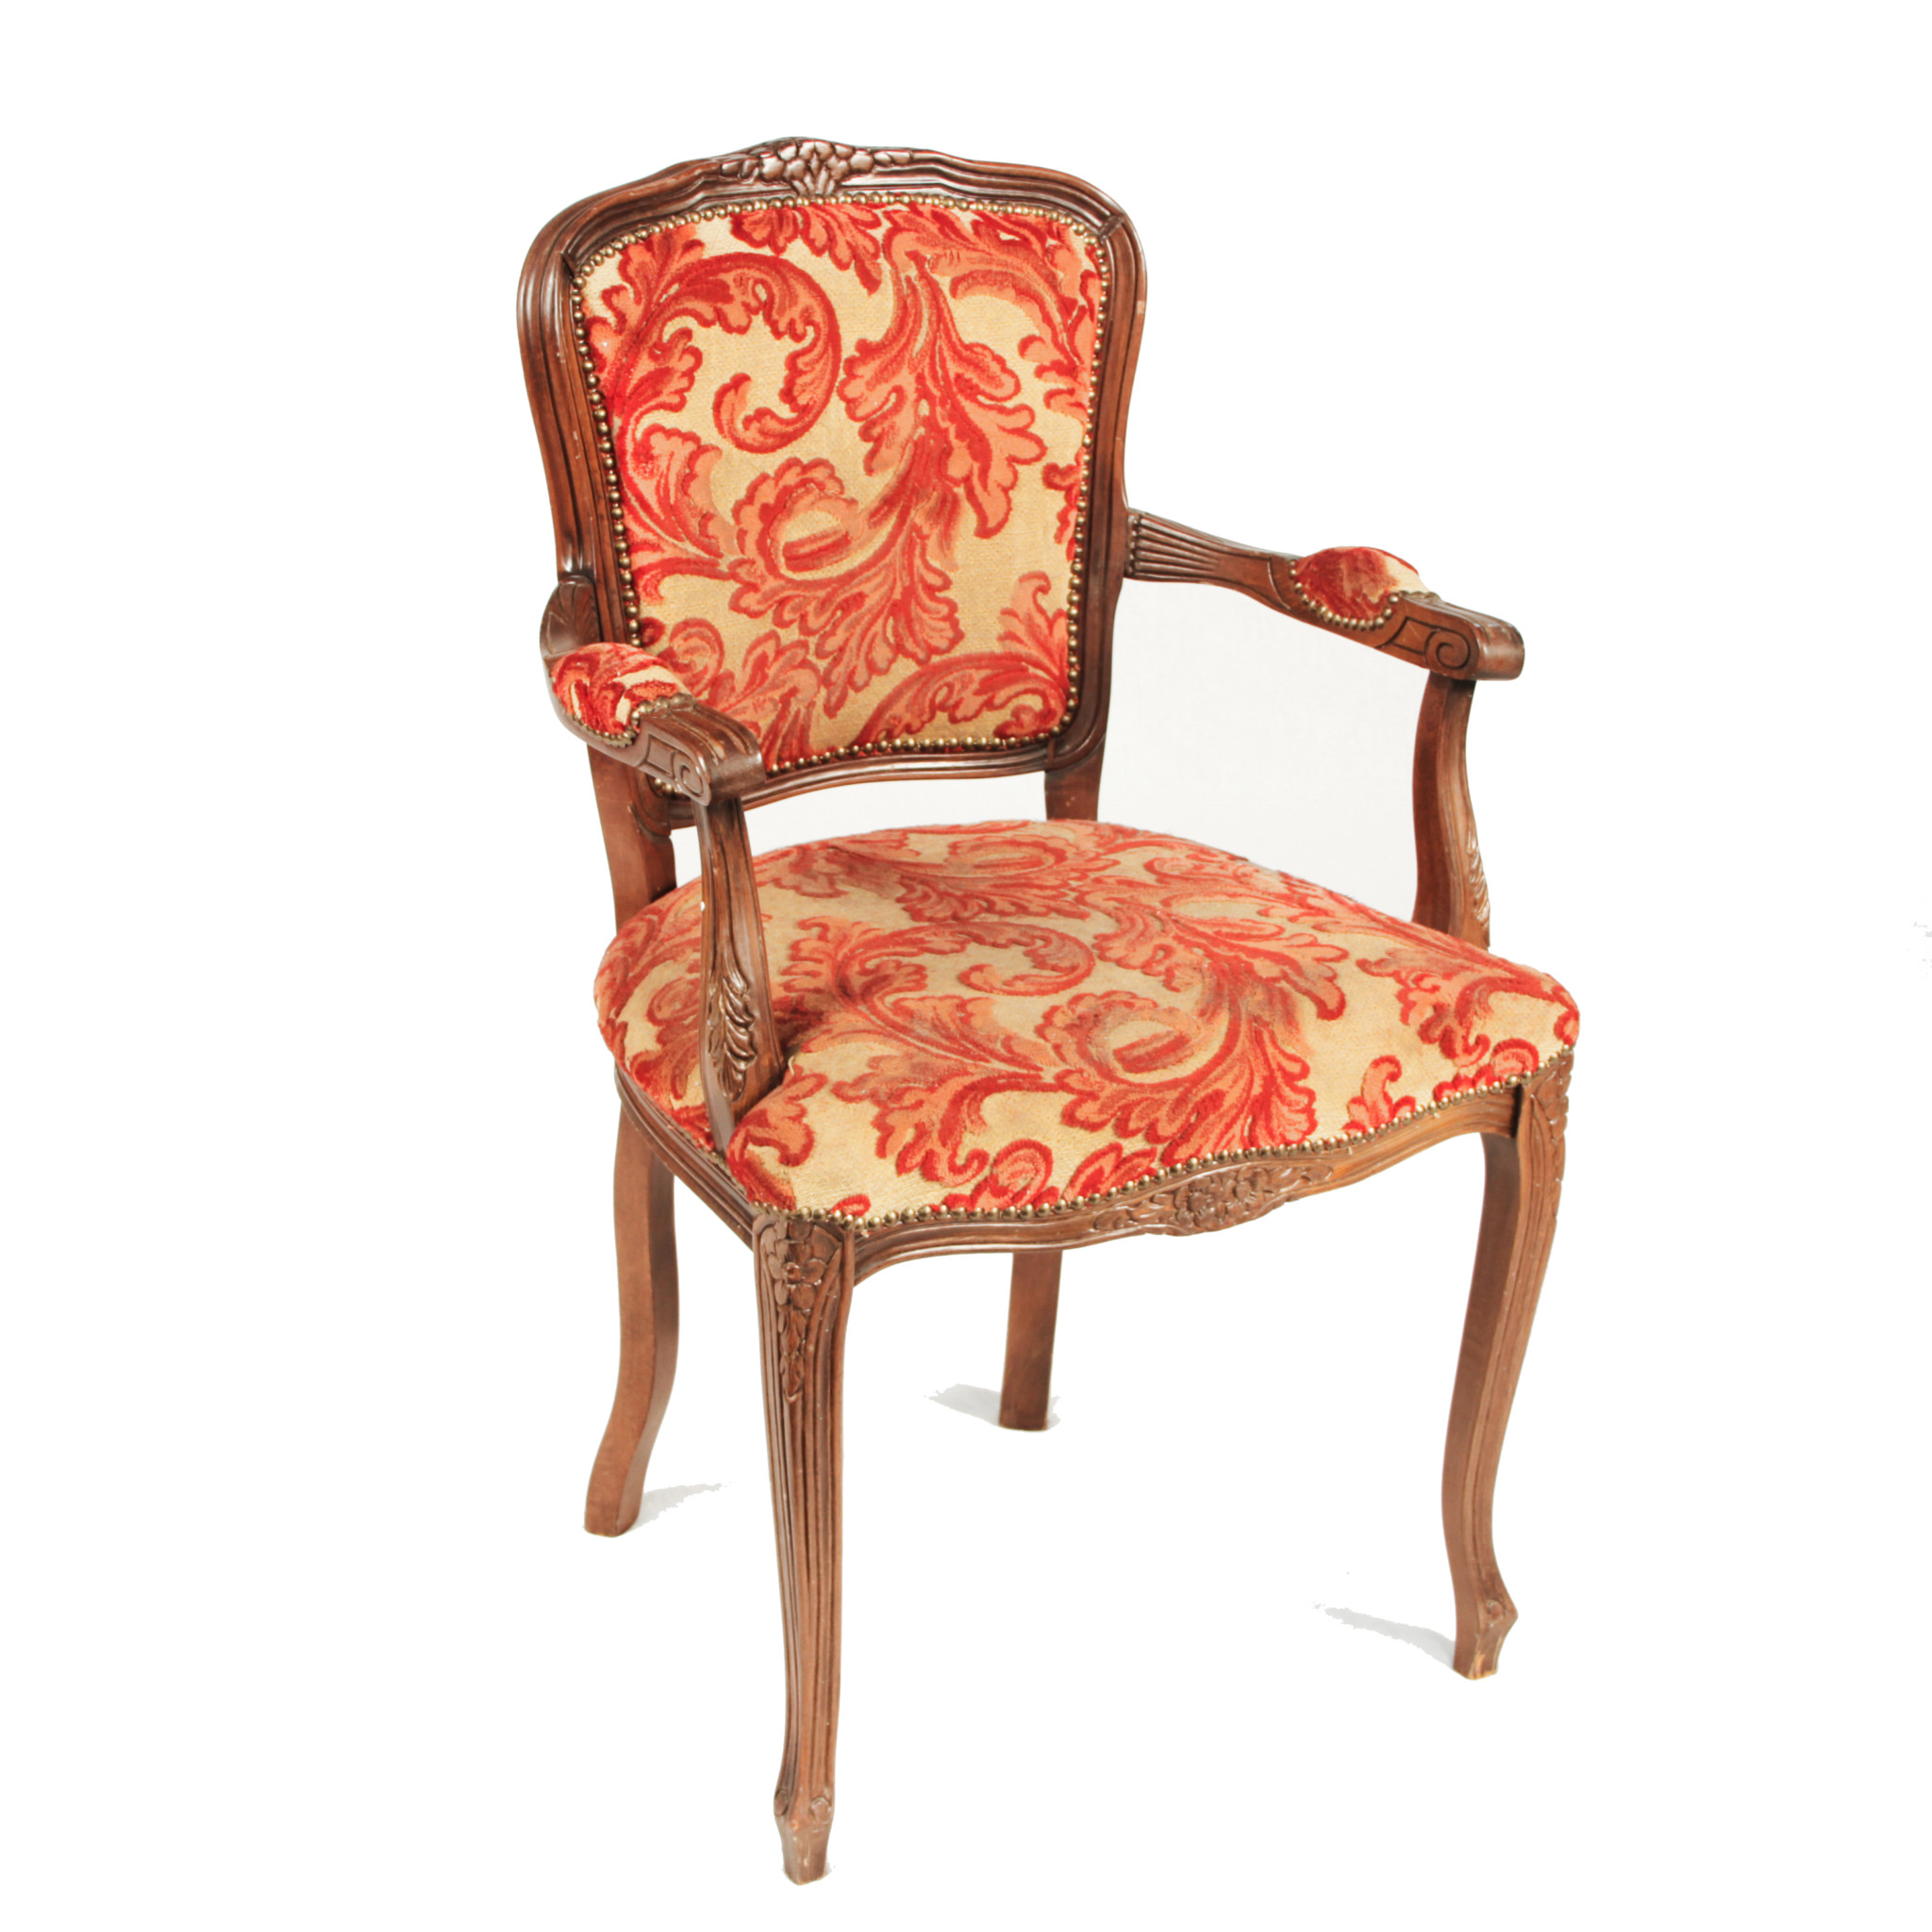 Gold Accent Chairs Red And Gold Damask Accent Chair Peter Corvallis Productions